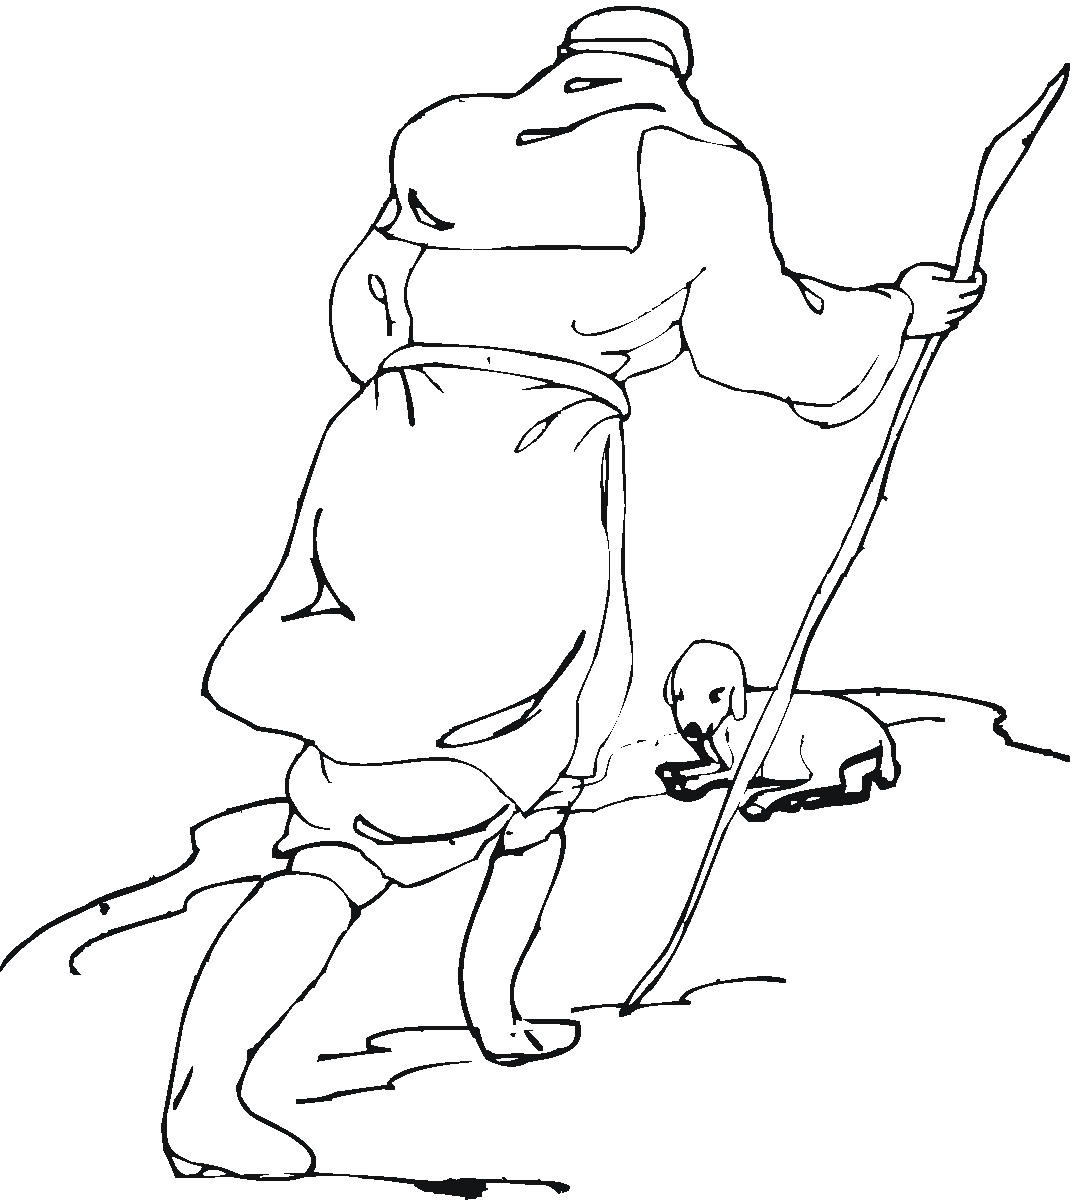 christian coloring pages lamb - photo#12